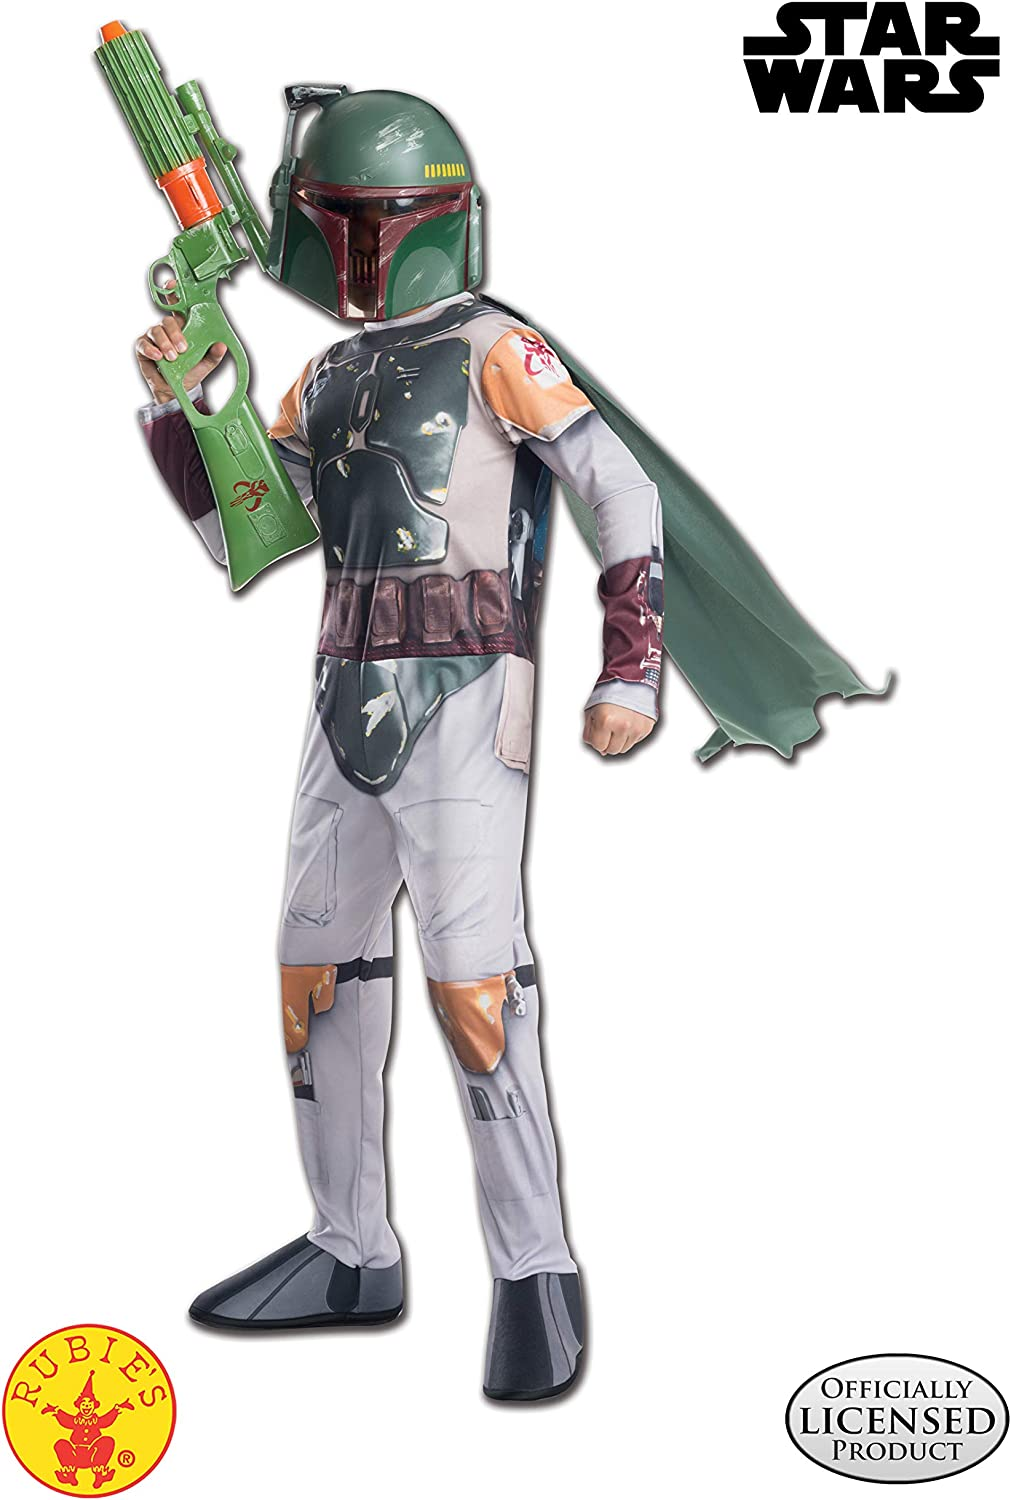 Boys Child STAR WARS Deluxe Boba Fett Costume Outfit